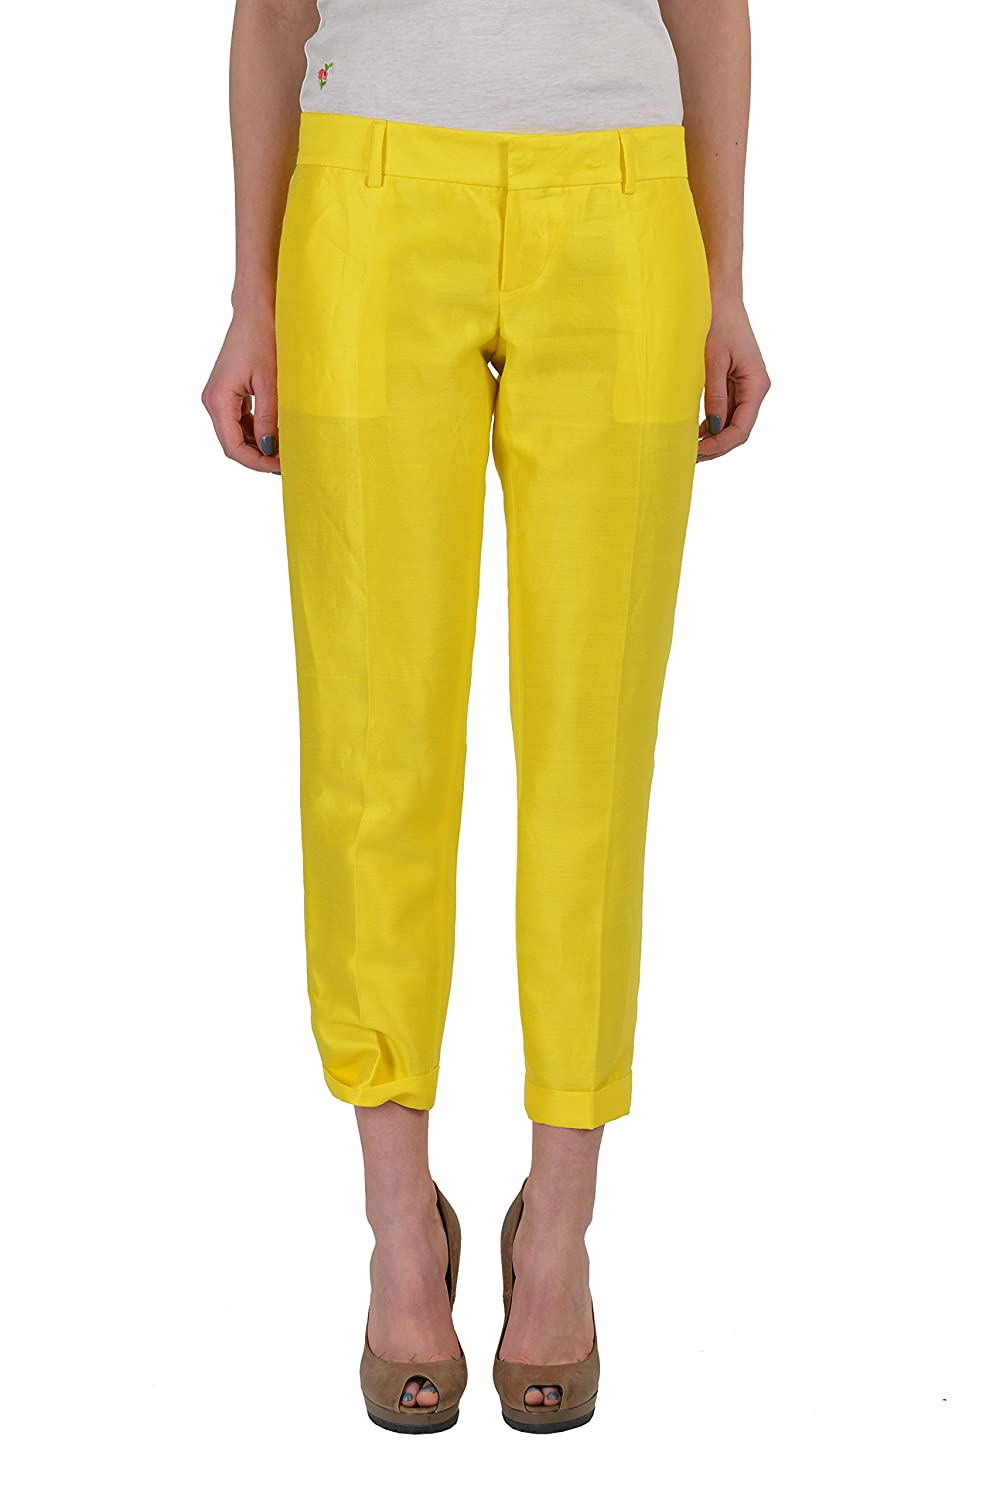 Dsquared2 Women's Yellow Silk Flat Front Cropped Pants US 4 IT 40